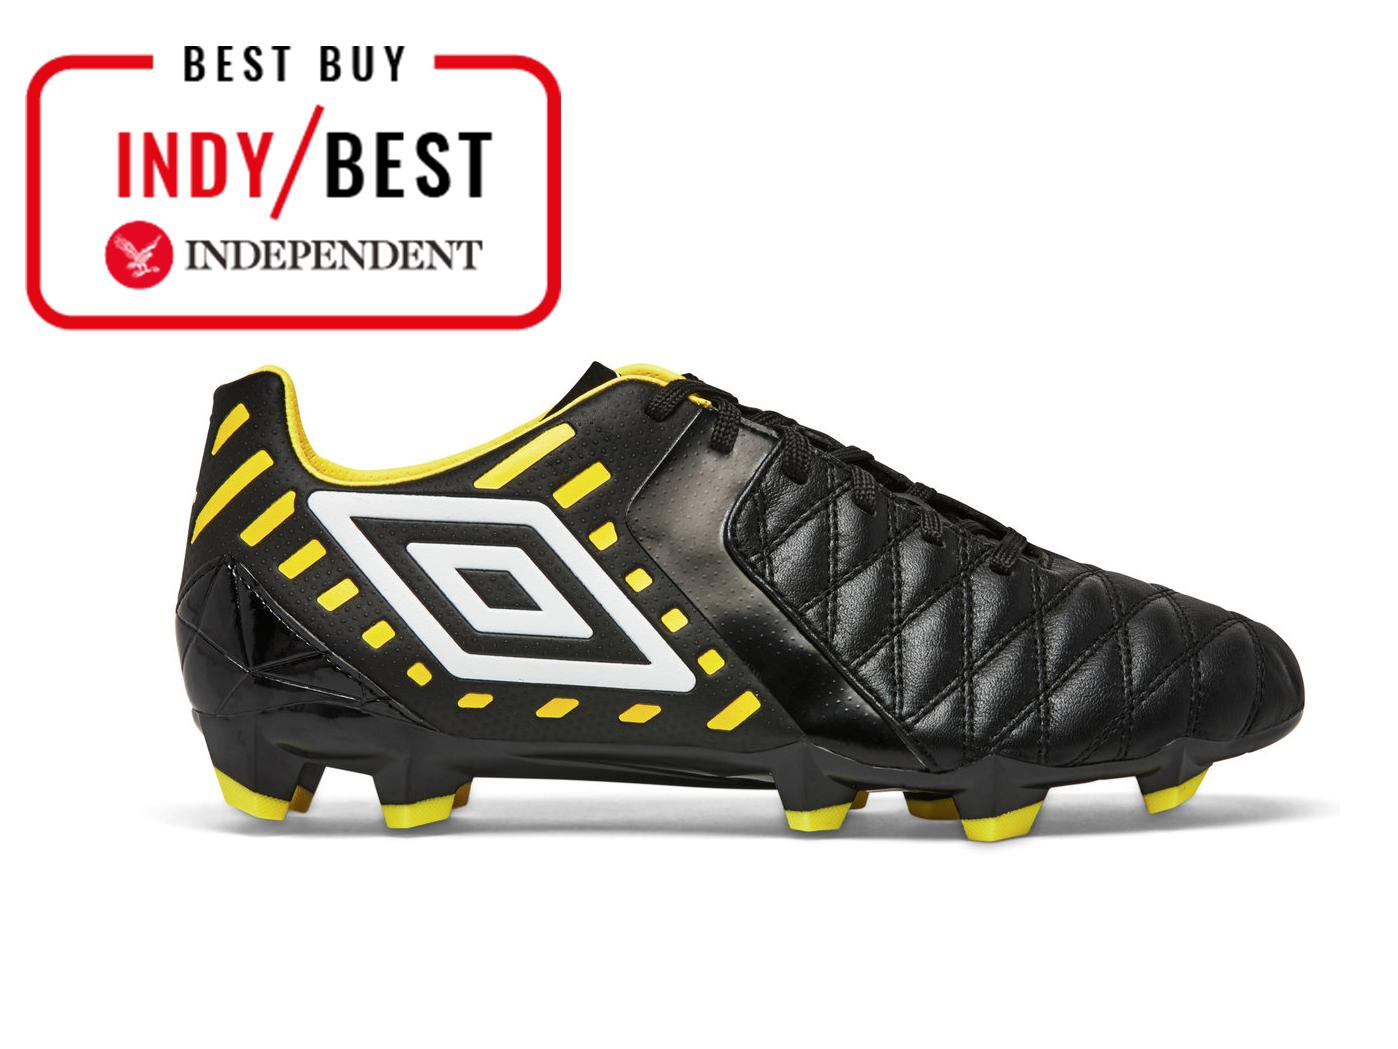 1f7b518bbc7 10 best kids' football boots | The Independent